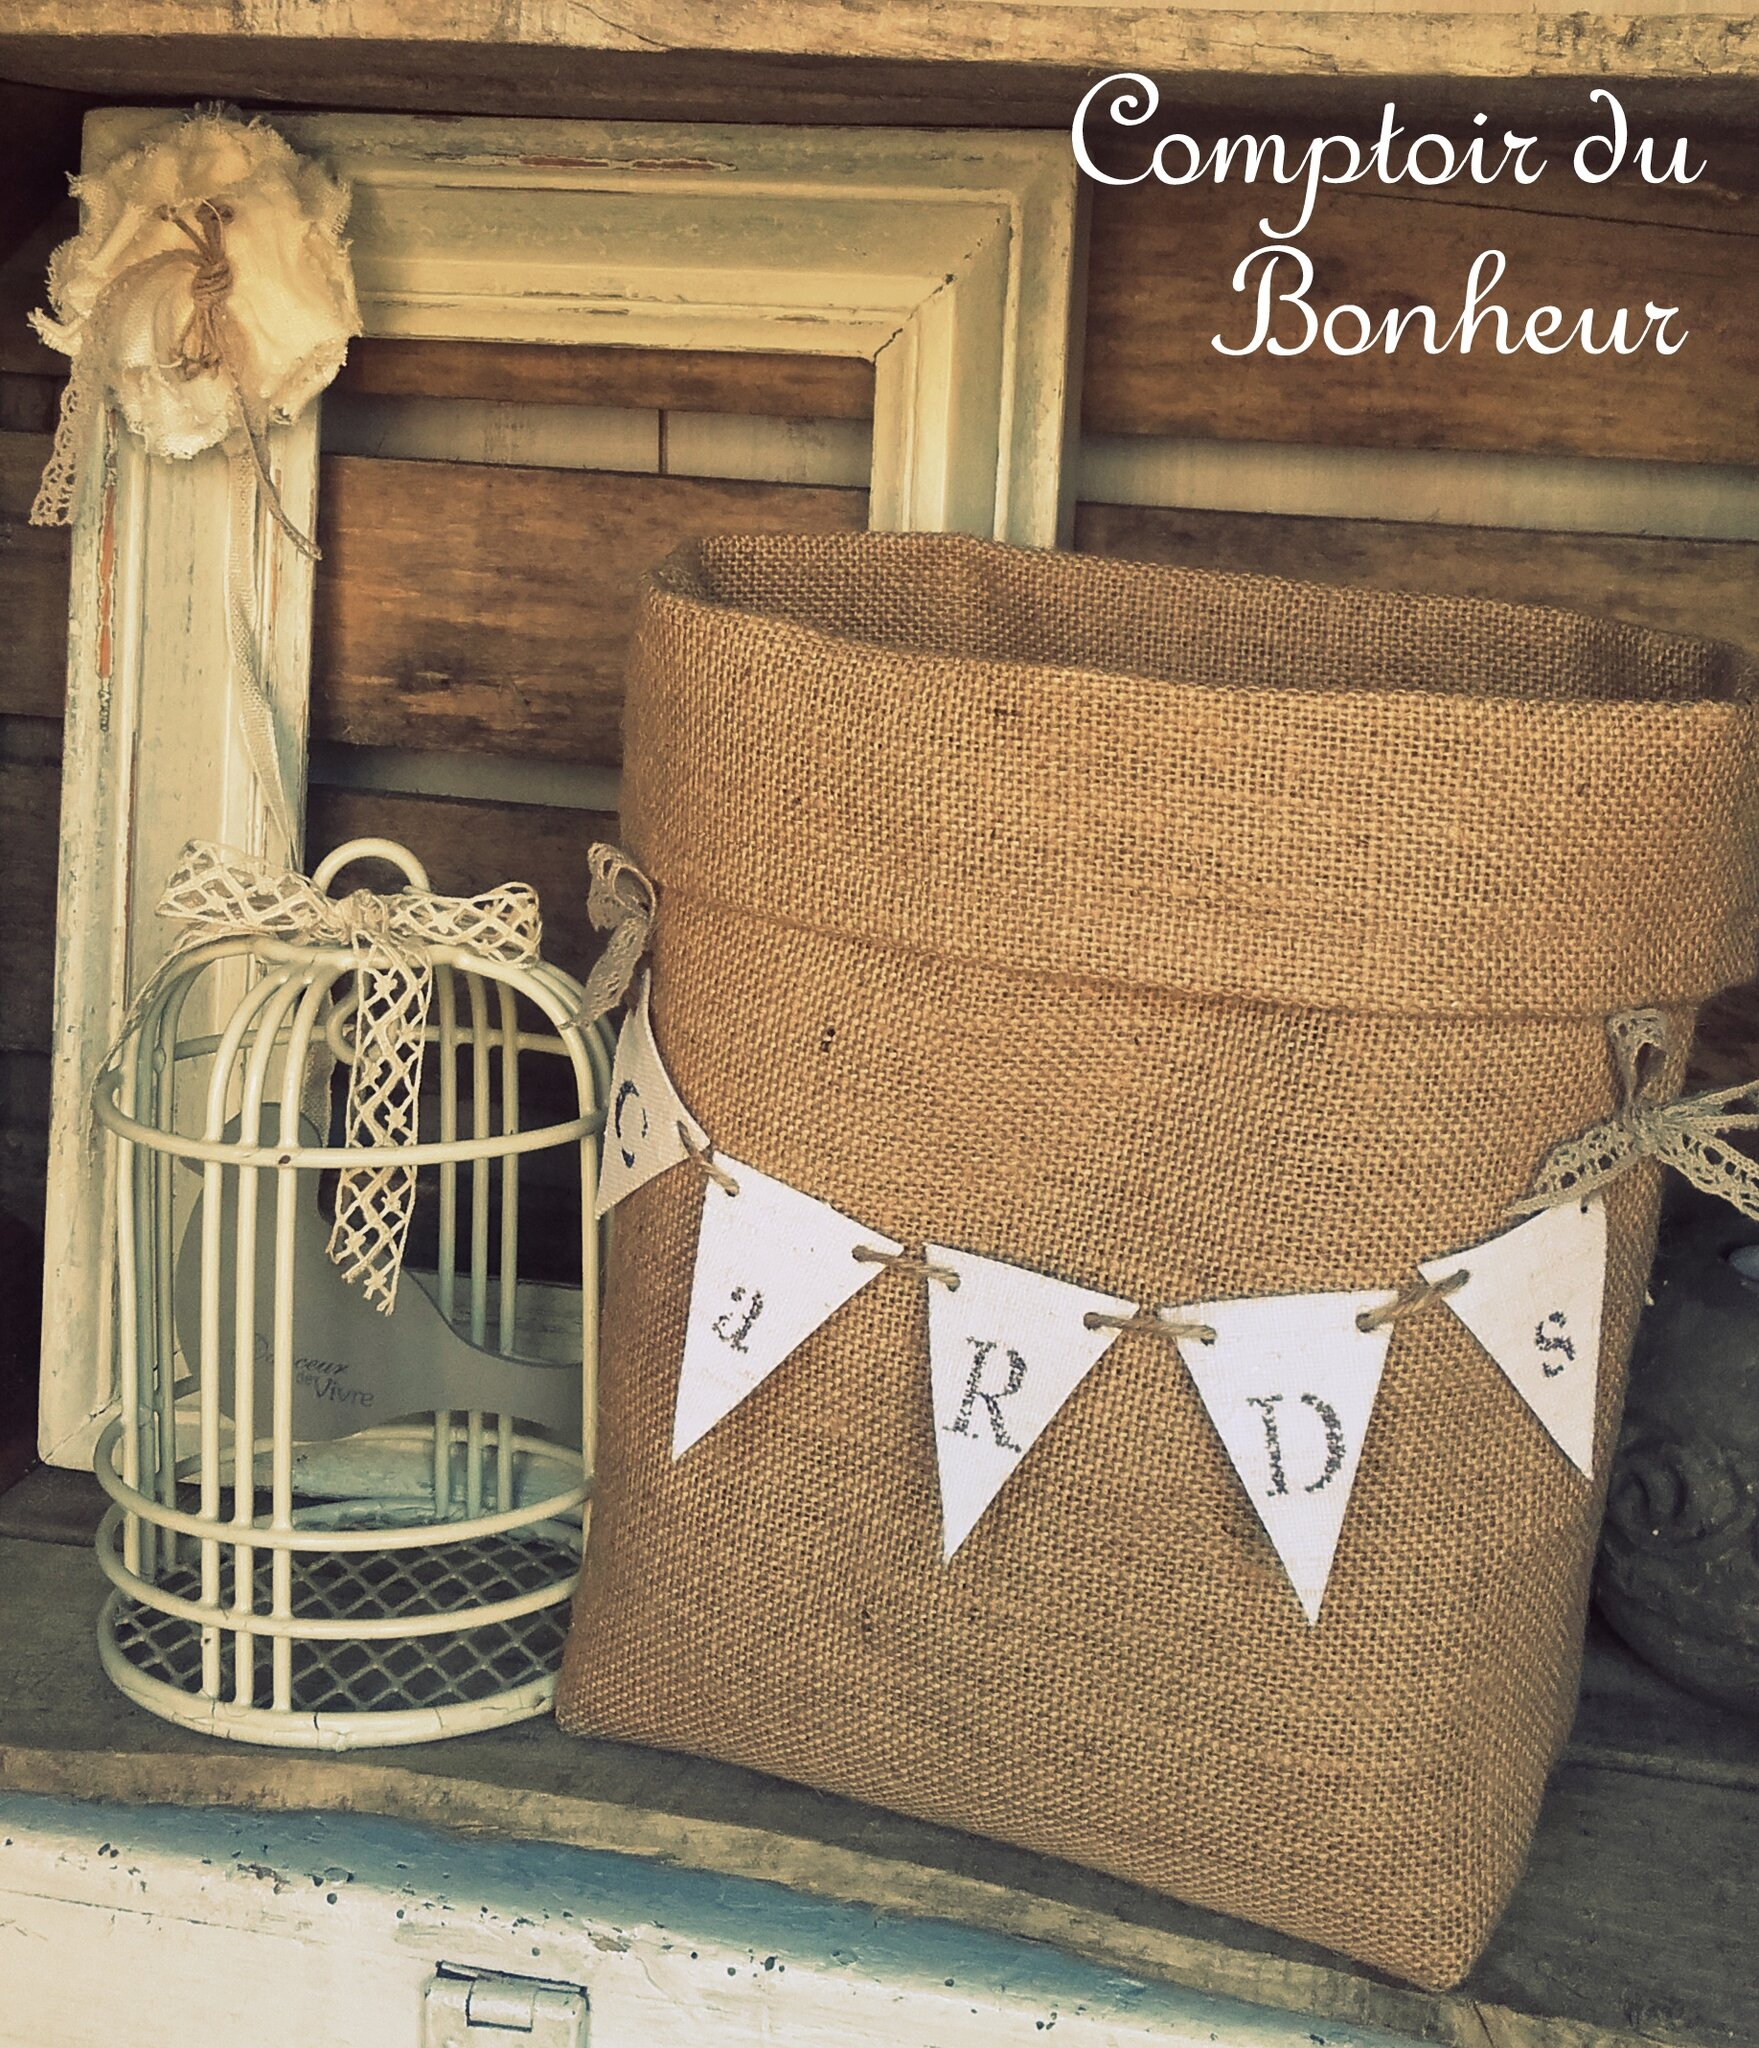 toile de jute tous les messages sur toile de jute comptoir du bonheur. Black Bedroom Furniture Sets. Home Design Ideas